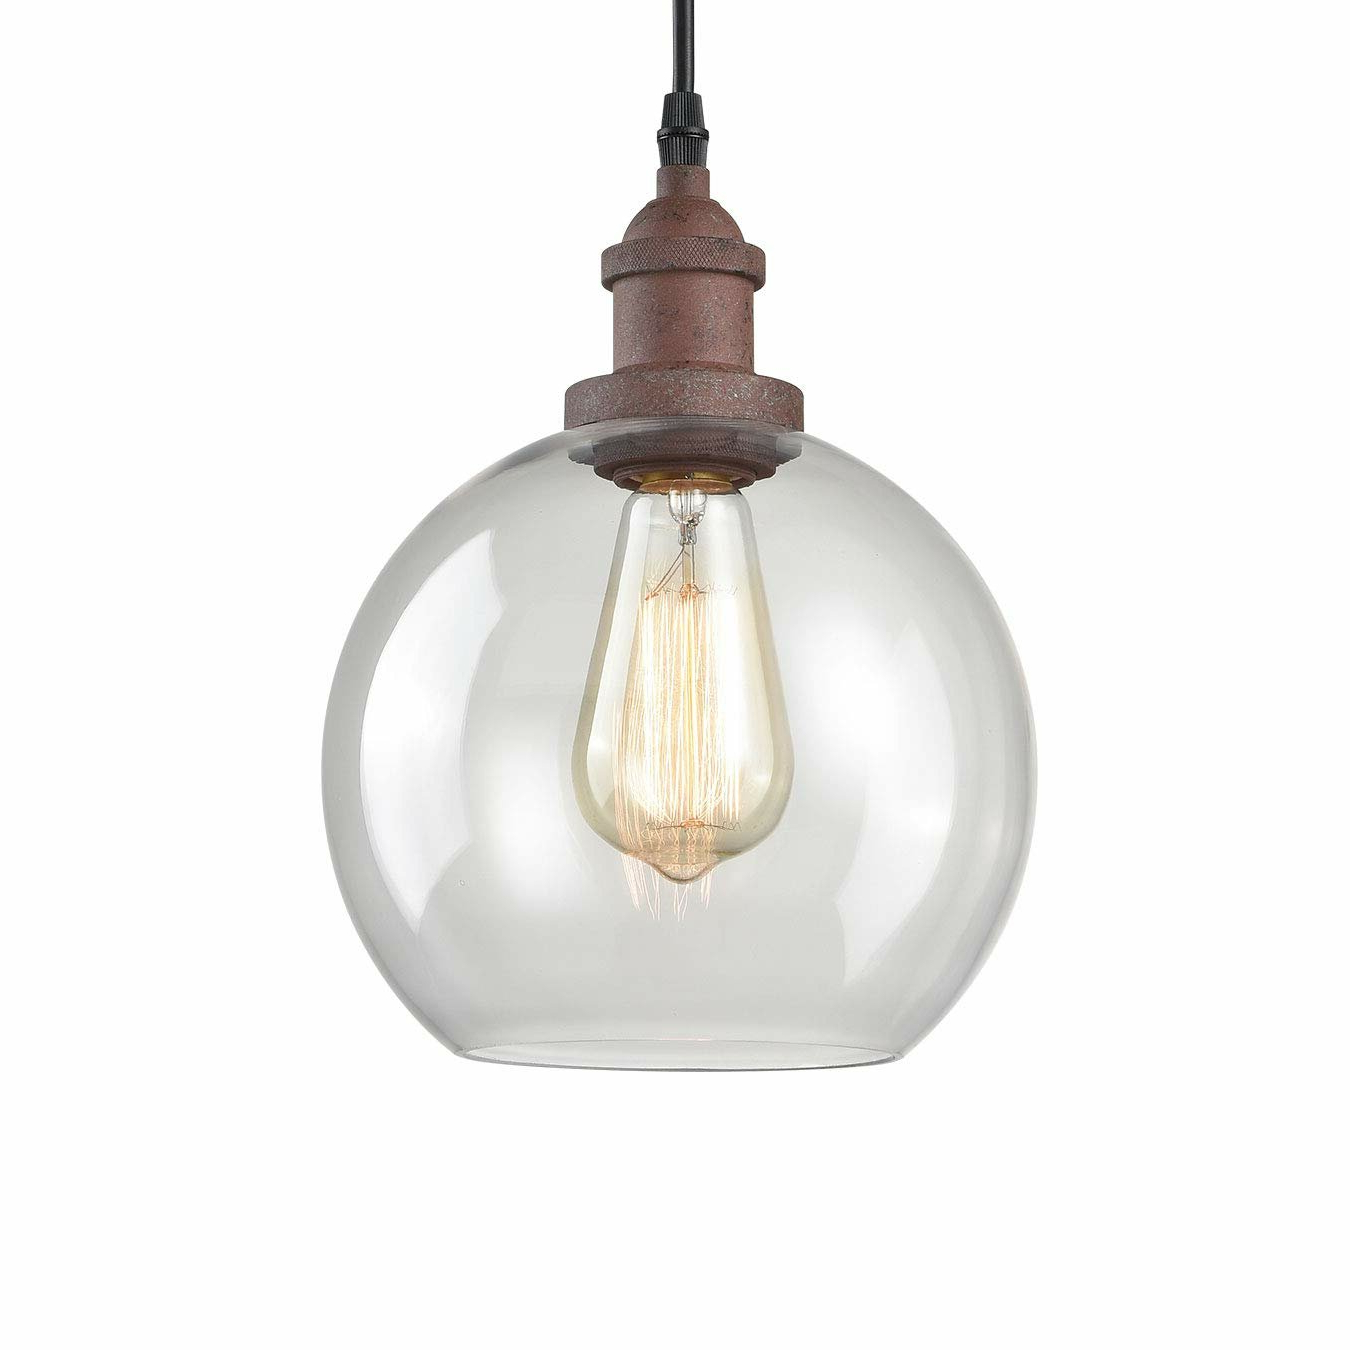 2019 Breakwater Bay Wimberley 1 Light Pendant Within Kimsey 1 Light Teardrop Pendants (Gallery 7 of 20)